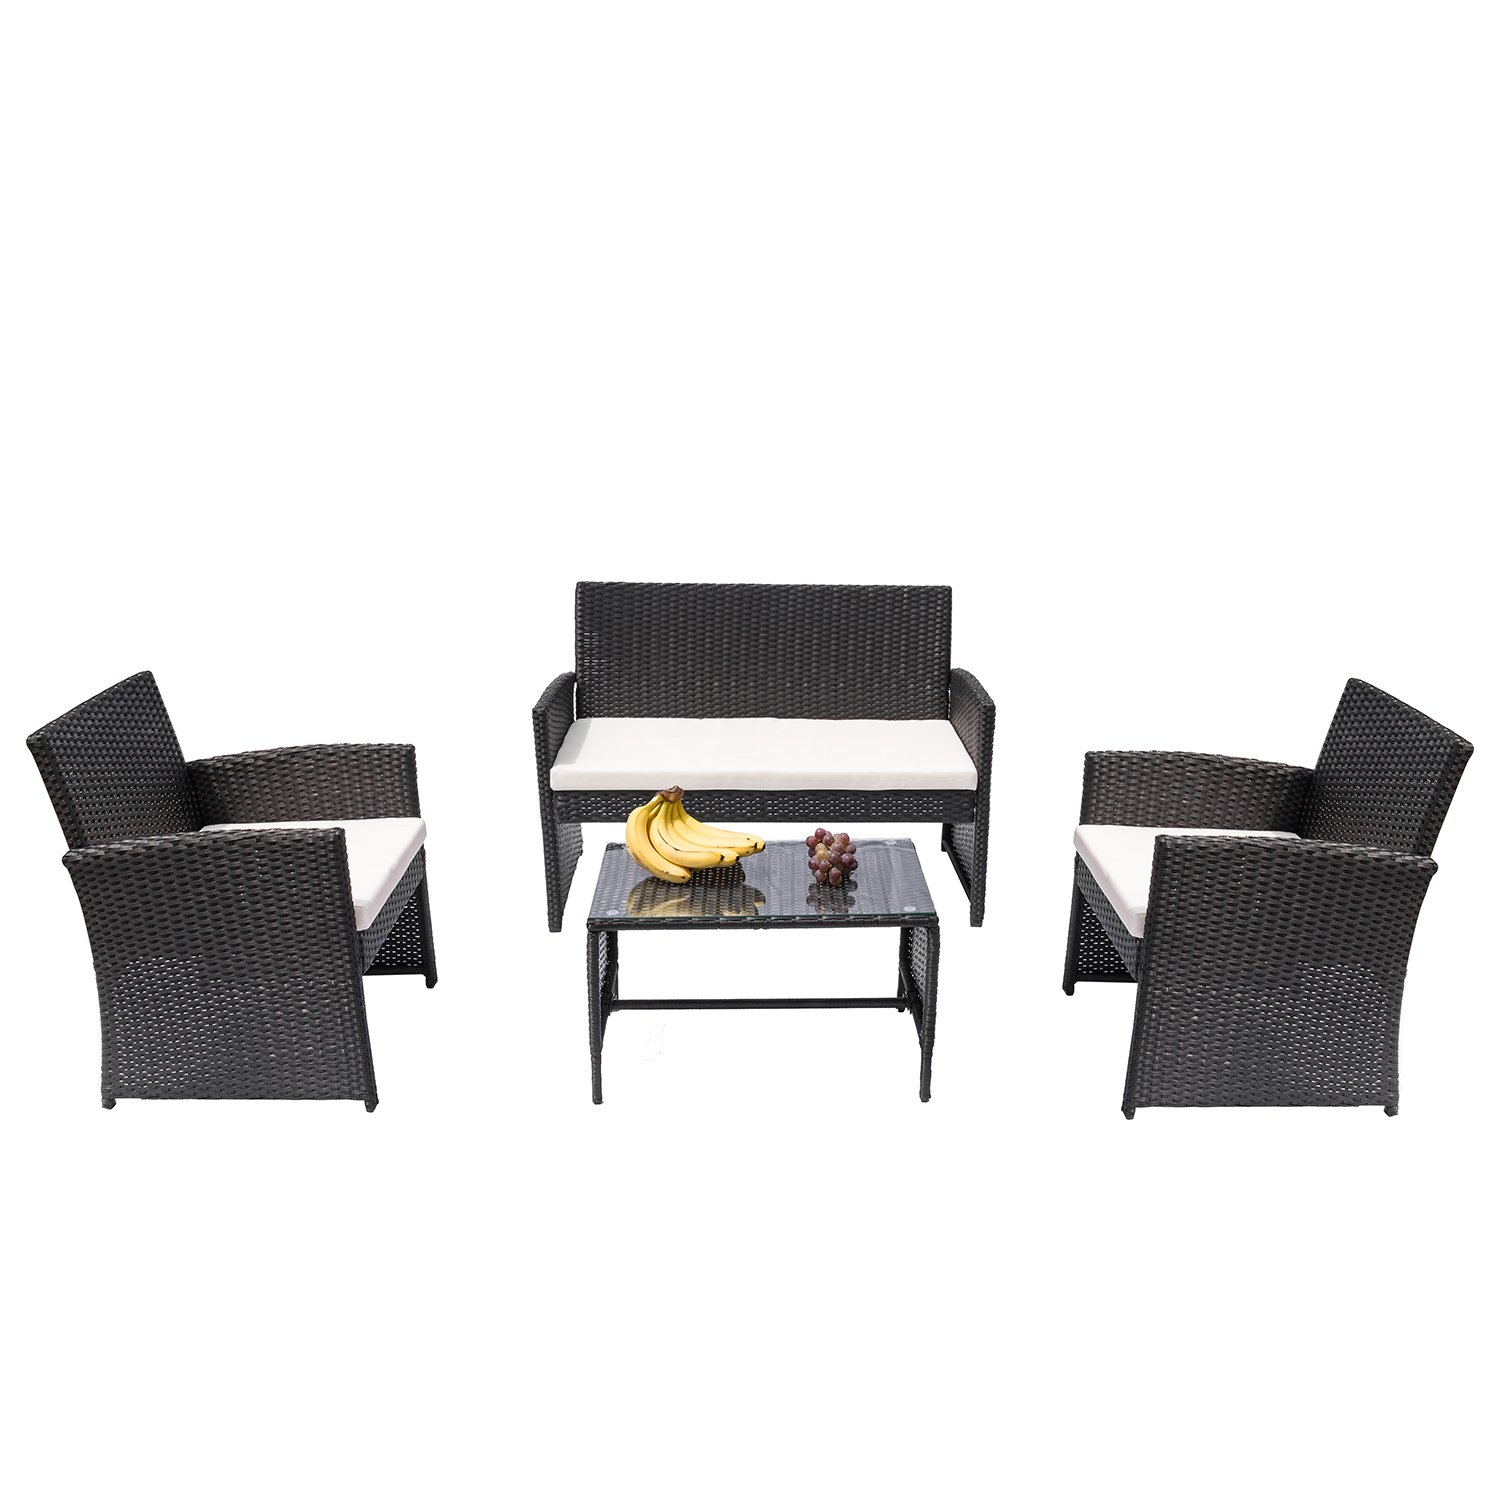 HANs 4 PC Rattan Patio Furniture Set Garden Lawn Sofa Cushioned Seat Wicker Sofa (Black)